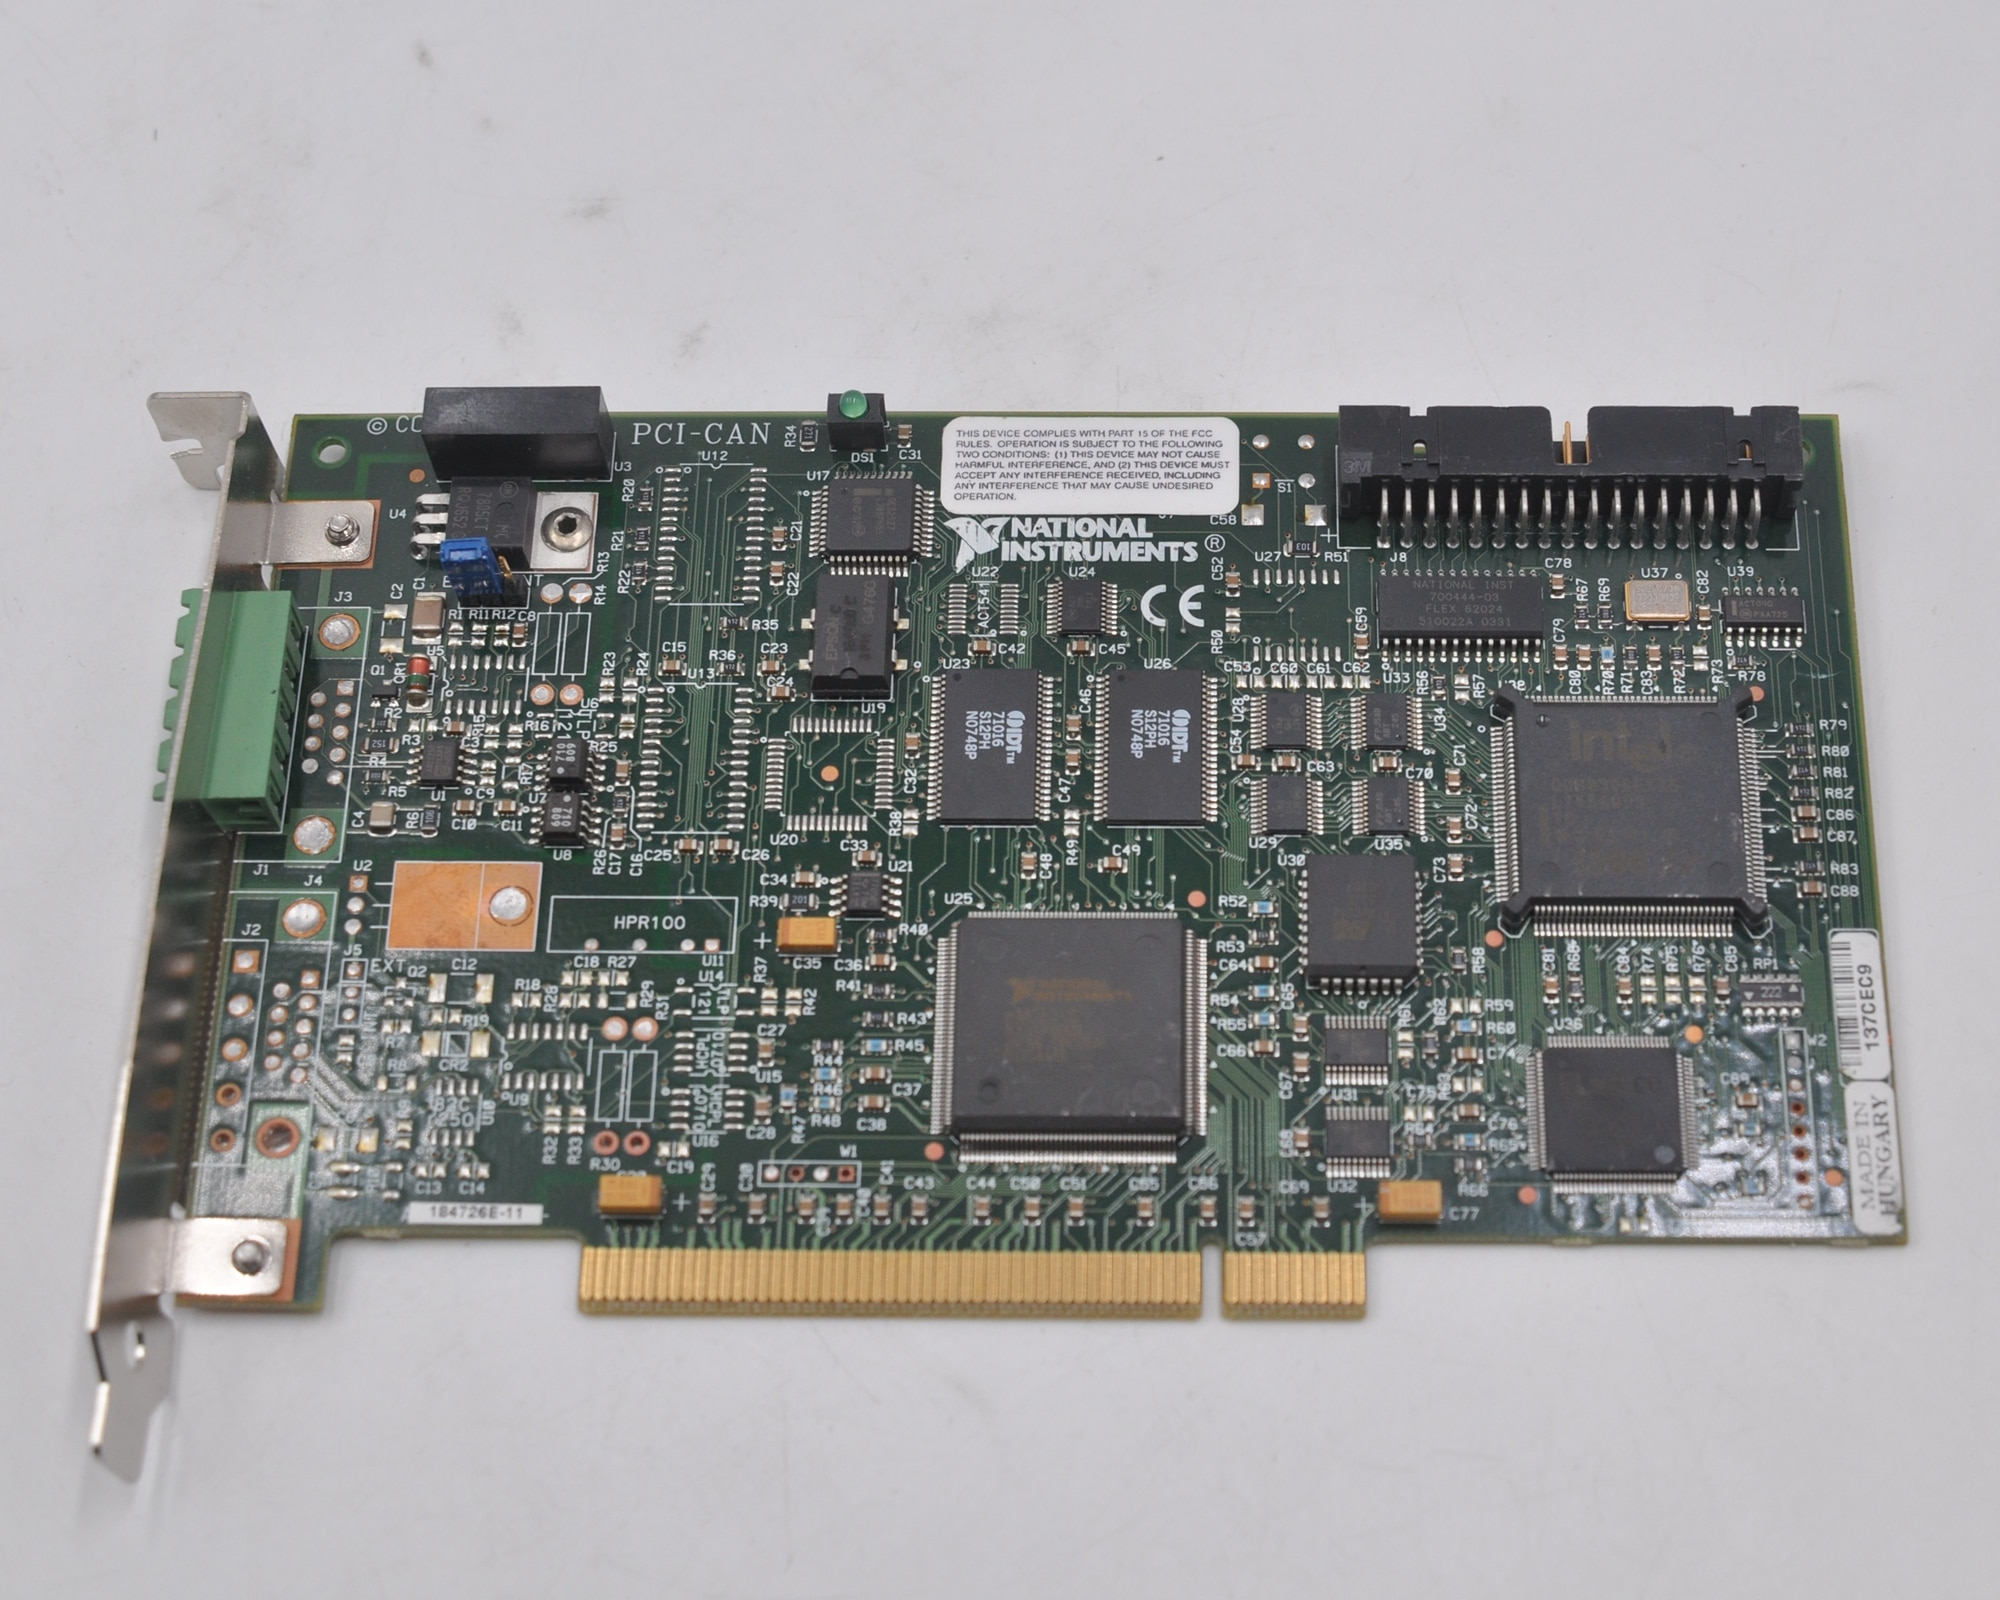 American NI PCI-CAN 2-port high-speed acquisition card